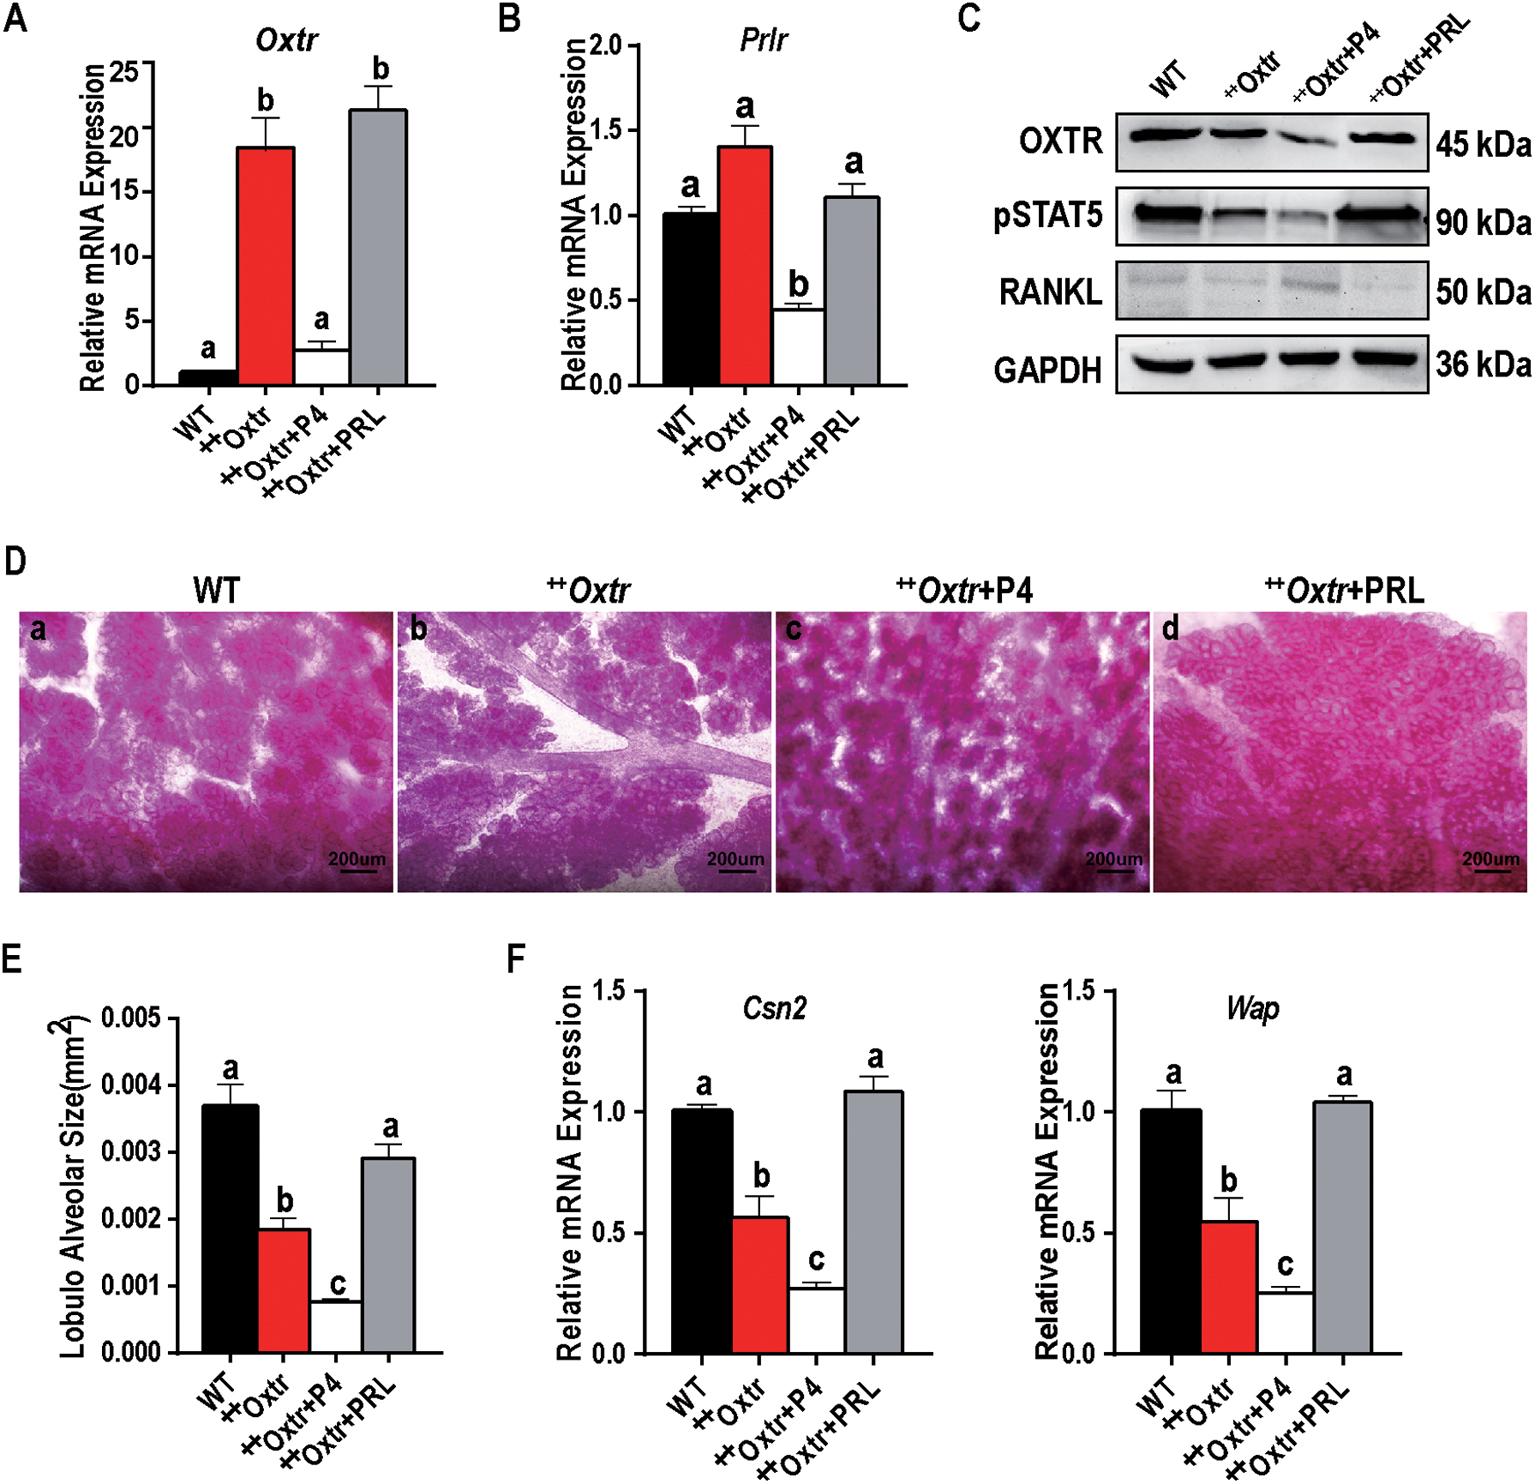 OXTR overexpression leads to abnormal mammary gland development in